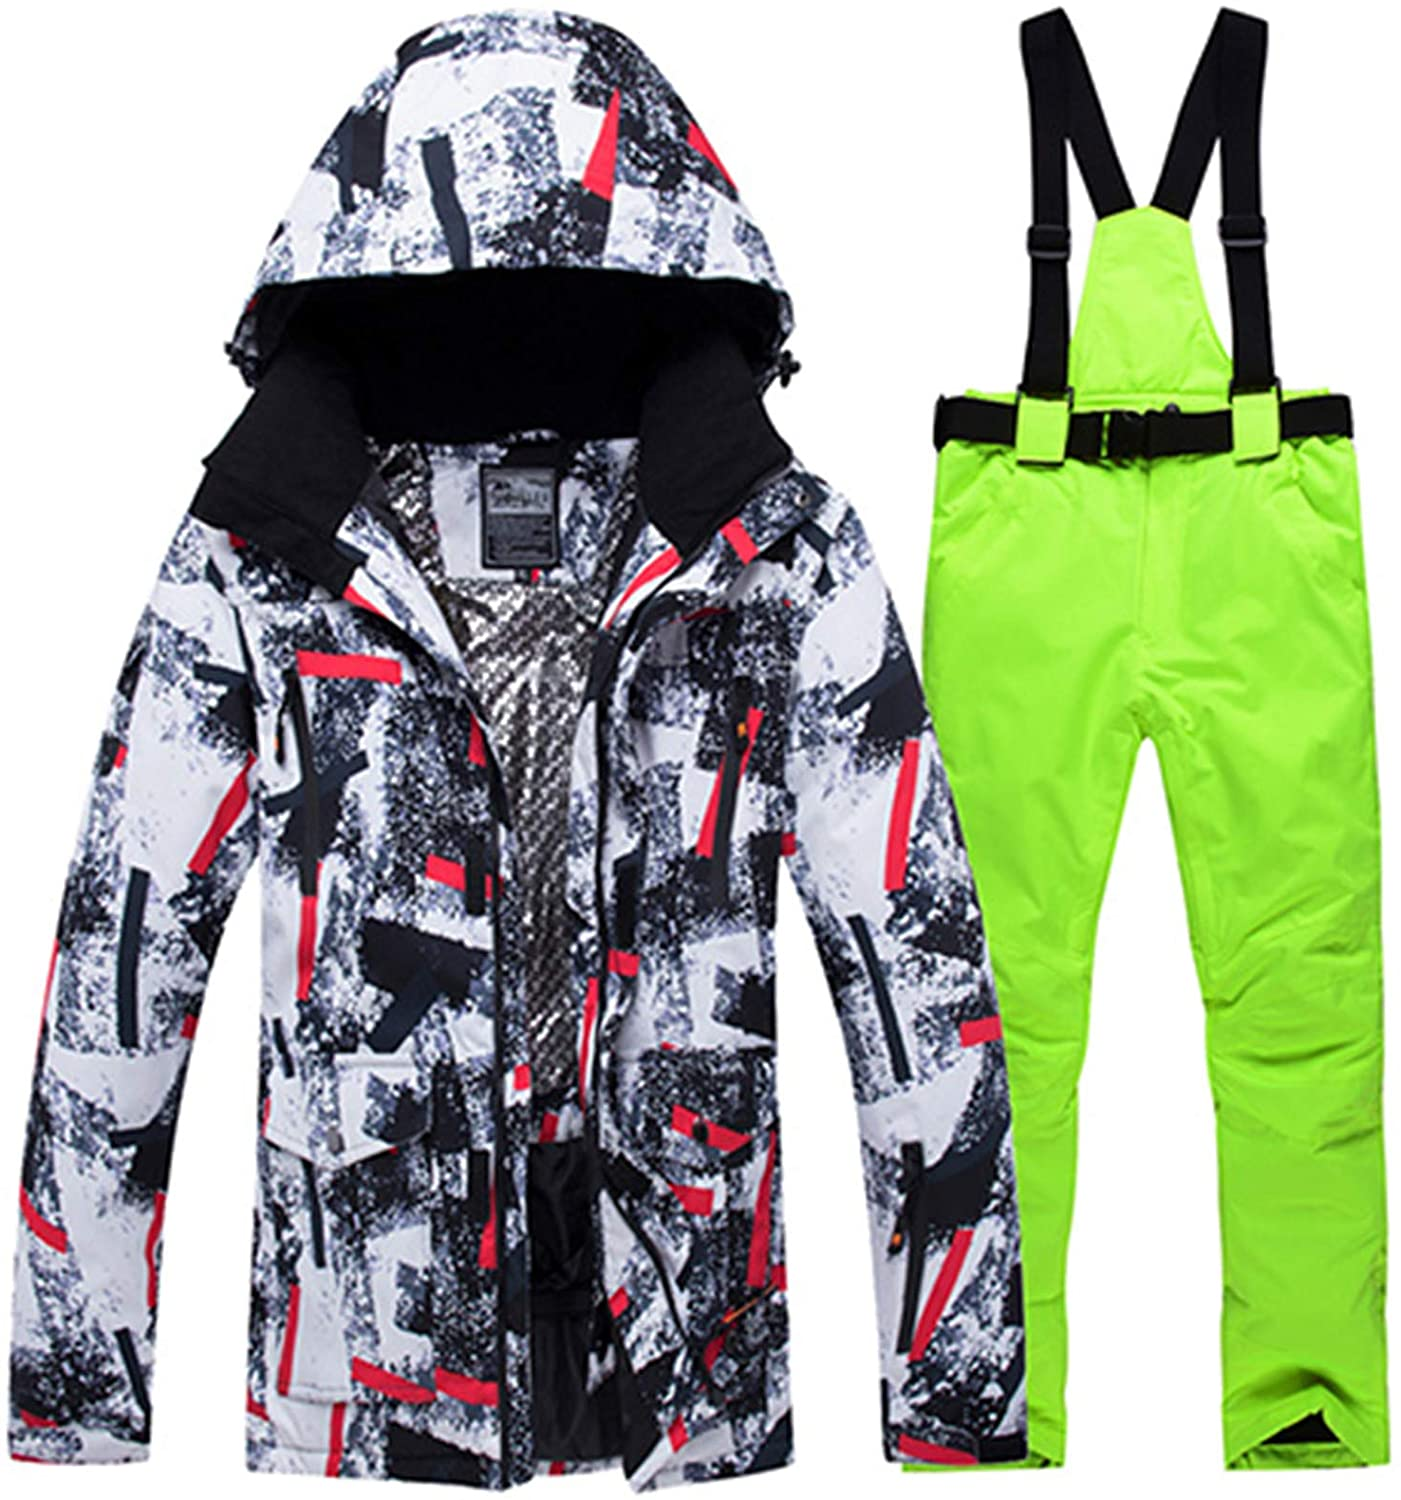 Ski Suit Men Windproof Waterproof Thicken Male Clothes Coat Trousers Pants Winter Ski Snowboard Jacket